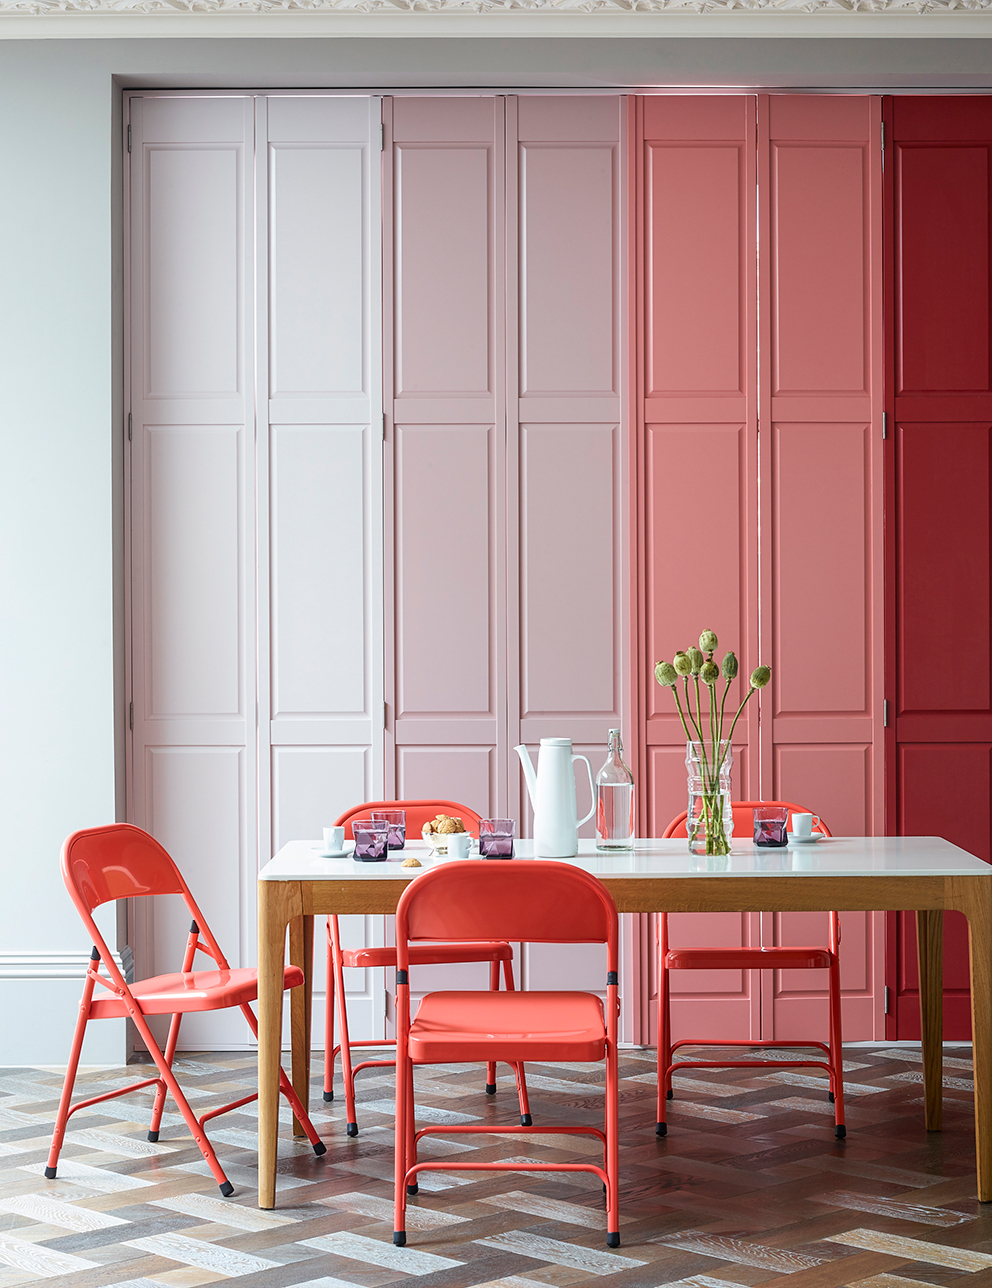 Shutterly Fabulous - French For Pineapple Blog - ombre pink solid door shutters in modern dining room setting with coral chairs and parquet floor